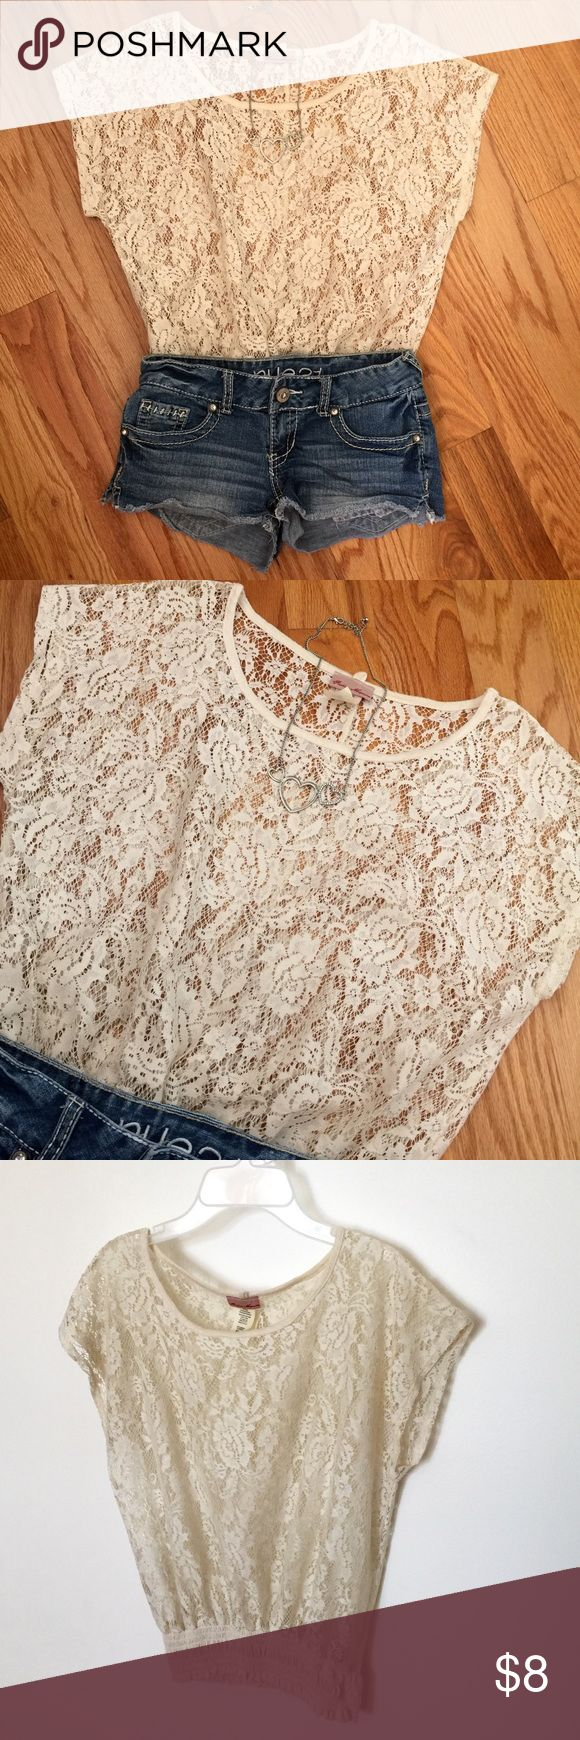 Lace Top This lace top is very beautiful with its floral print design and is in great condition. ❤️ Tops